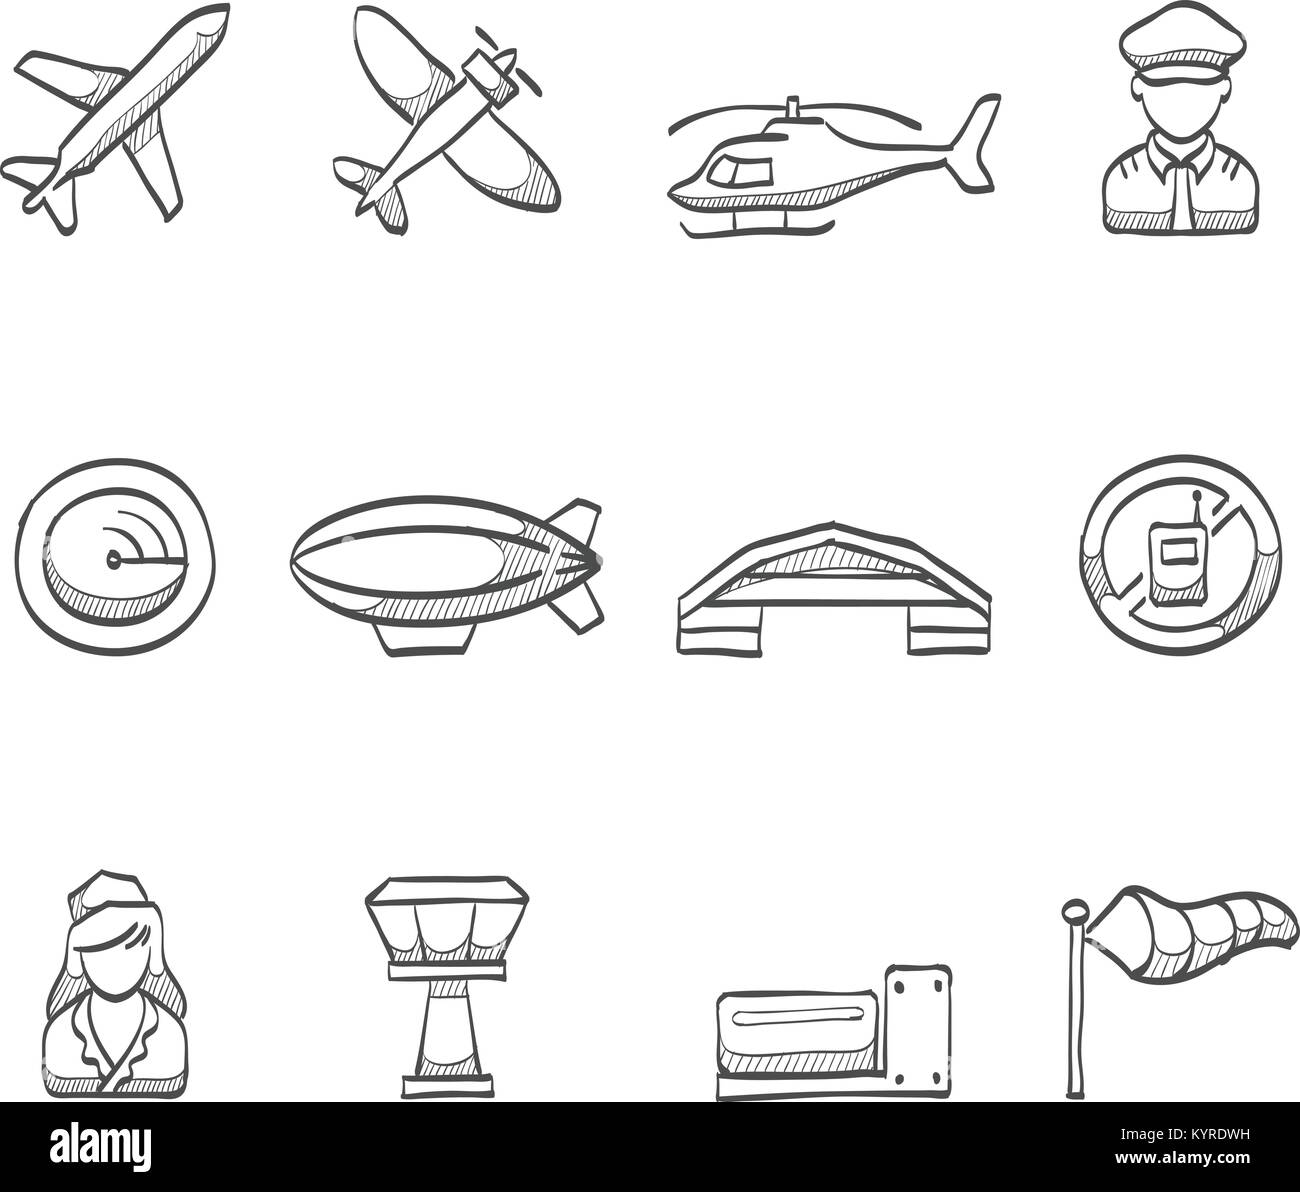 Aviation icons in sketch. - Stock Image